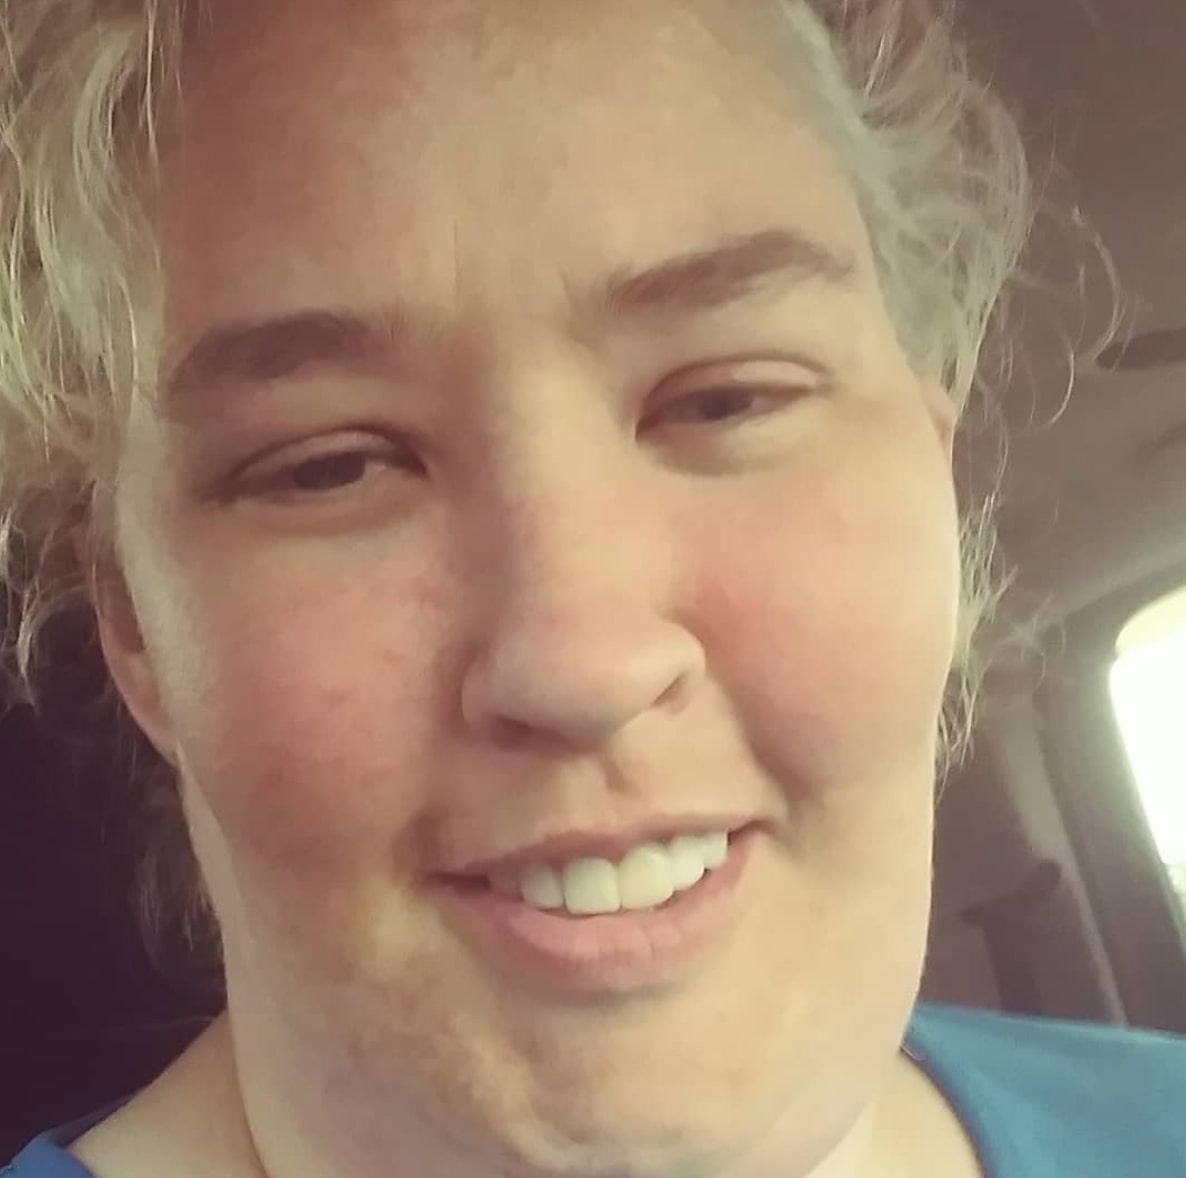 mama june reveals she gained 70-pounds amid pandemic